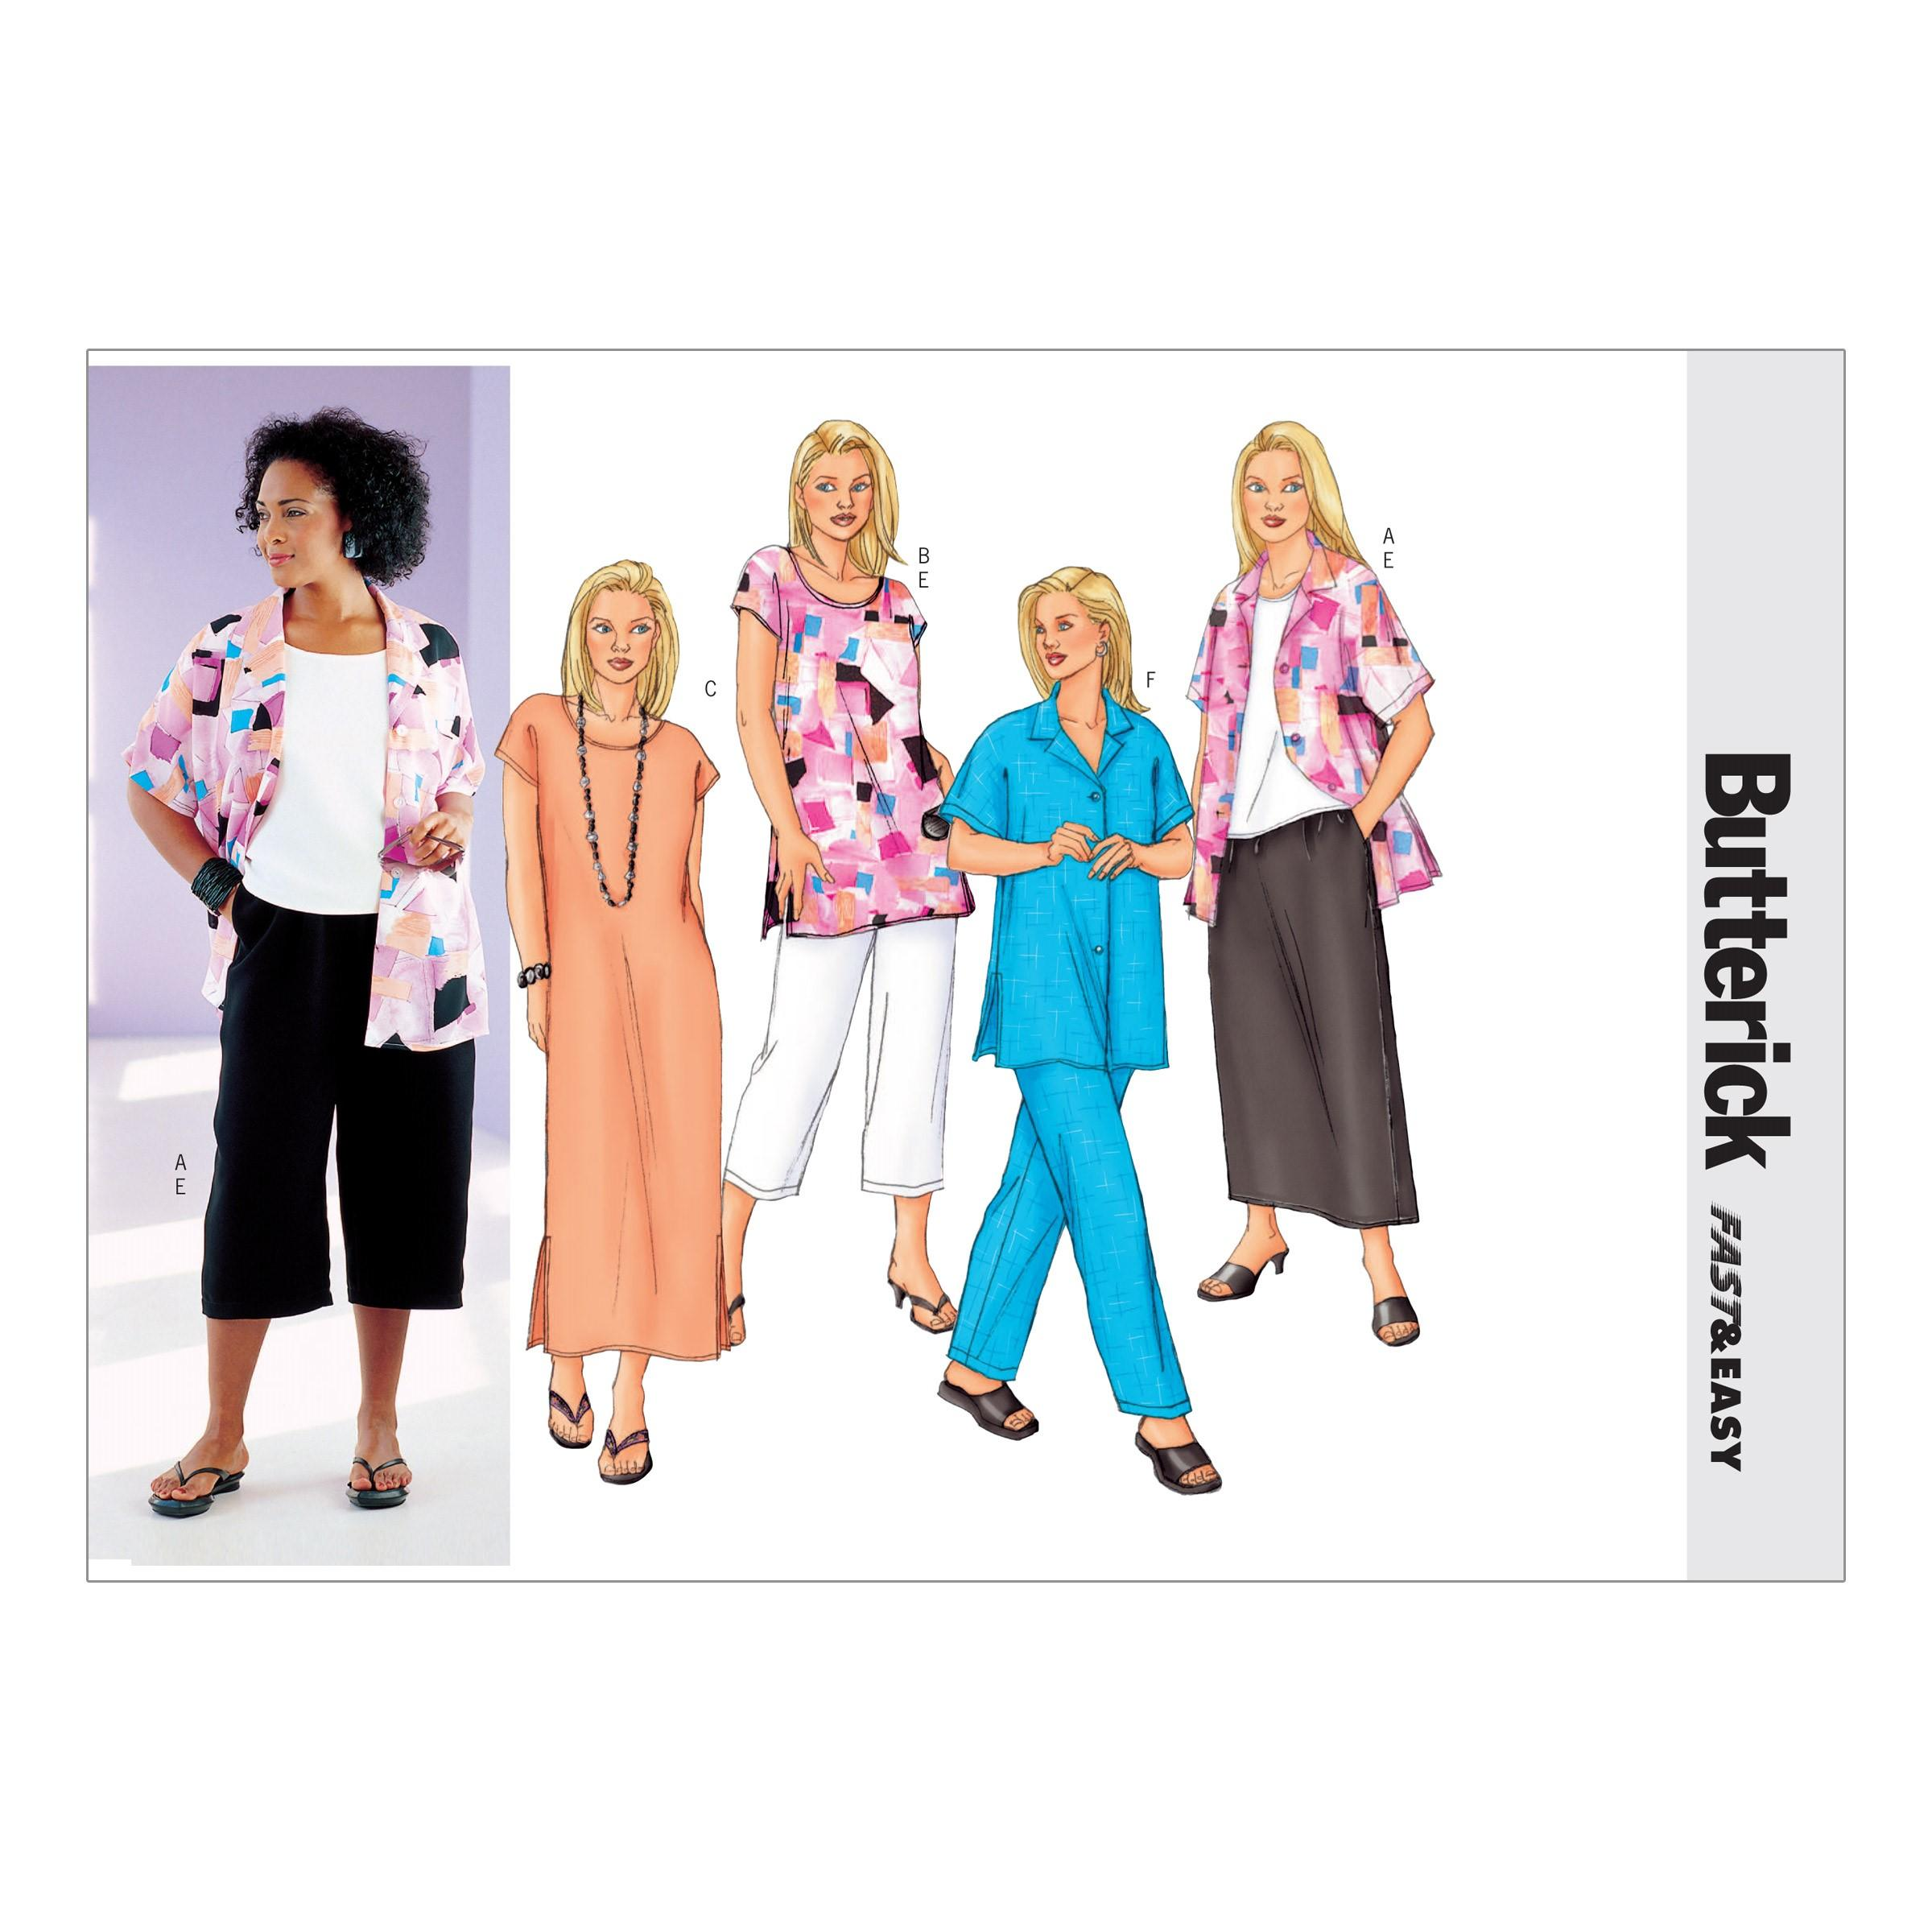 Butterick B3039 Women's/Women's Petite Shirt, Top, Tunic, Dress, Skirt & Pants